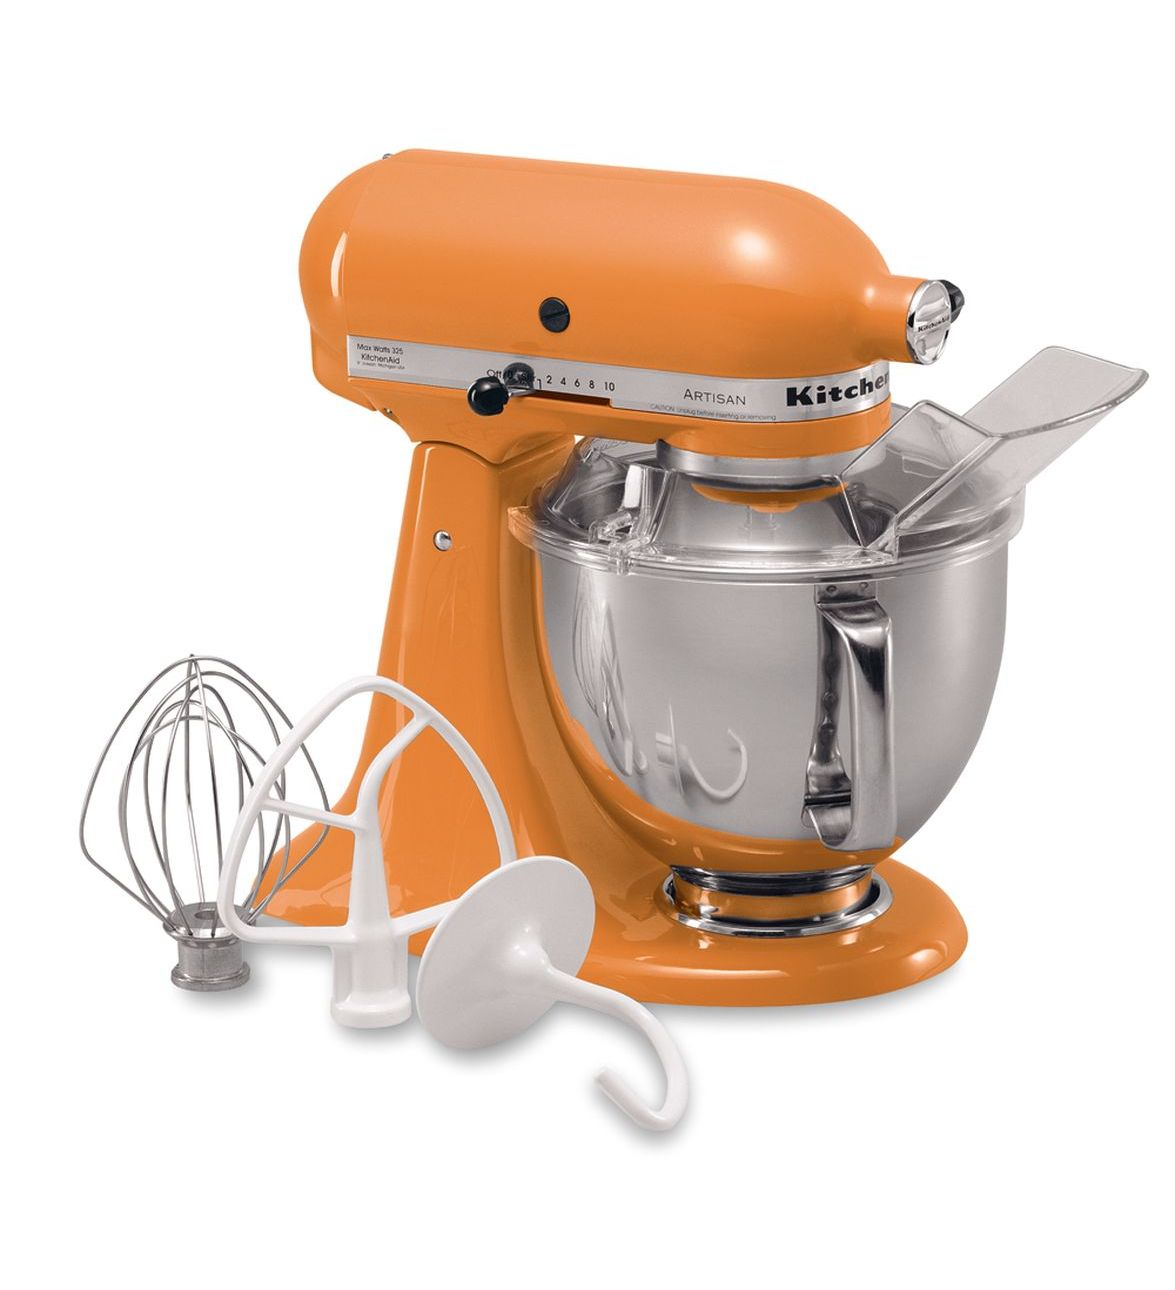 Kitchenaid Tangerine 5 Quart Artisan Series Stand Mixer